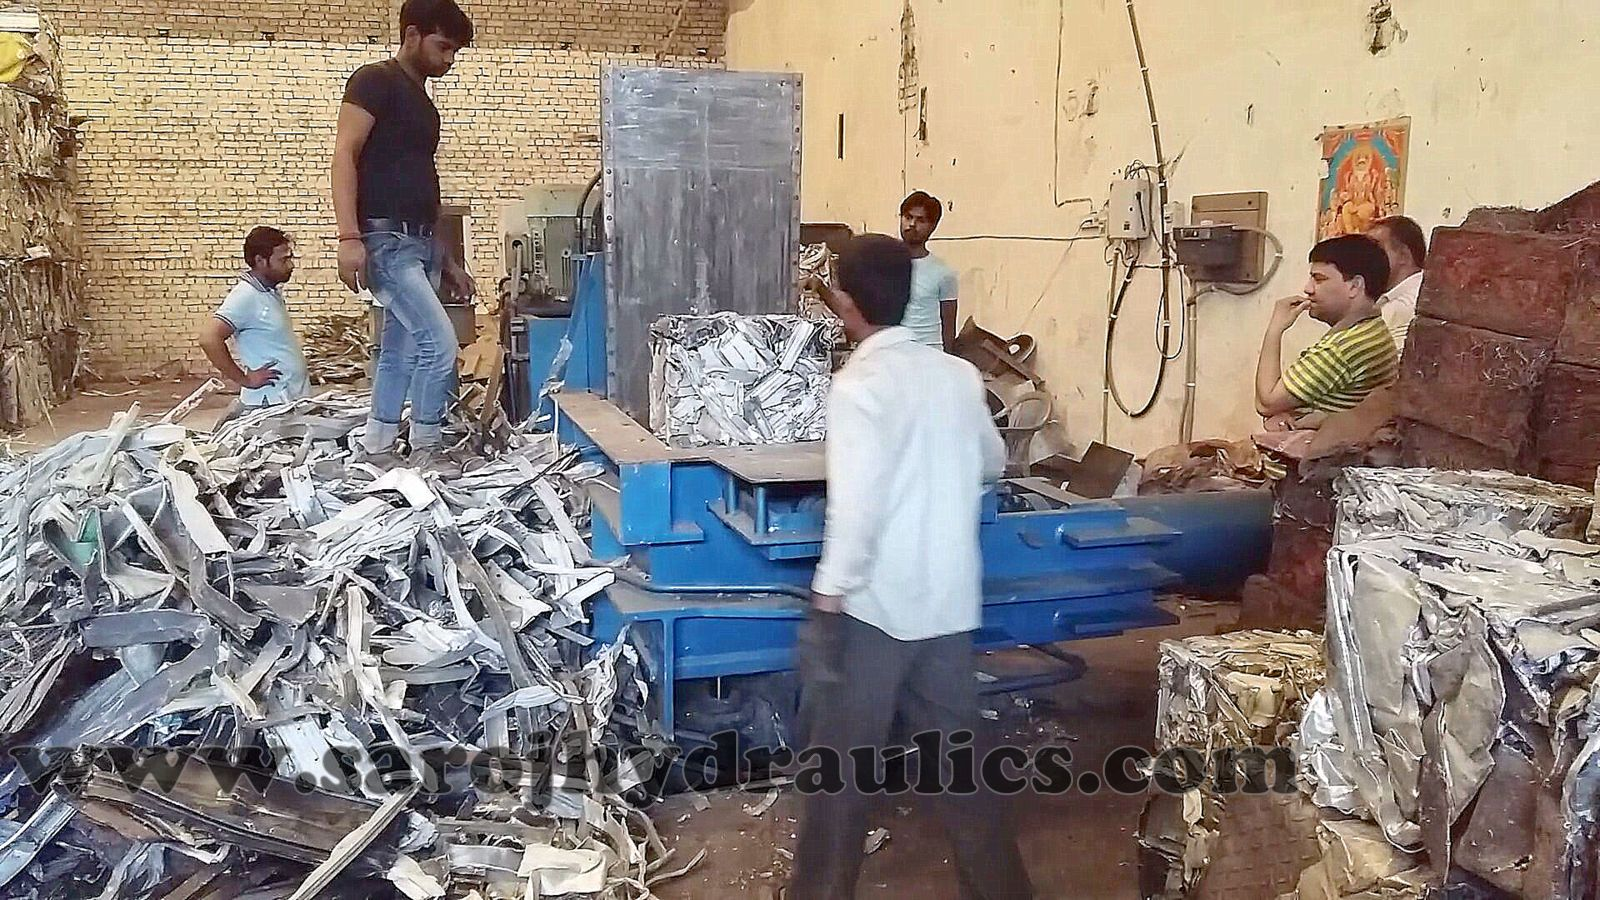 ALUMINIUM SCRAP /Tin Can,manufacturer baling press,Baling machine,hydraulic baling press,baler,hydraulic baling machine,baling press machine,bale press machine,pressing machine(INDIA)